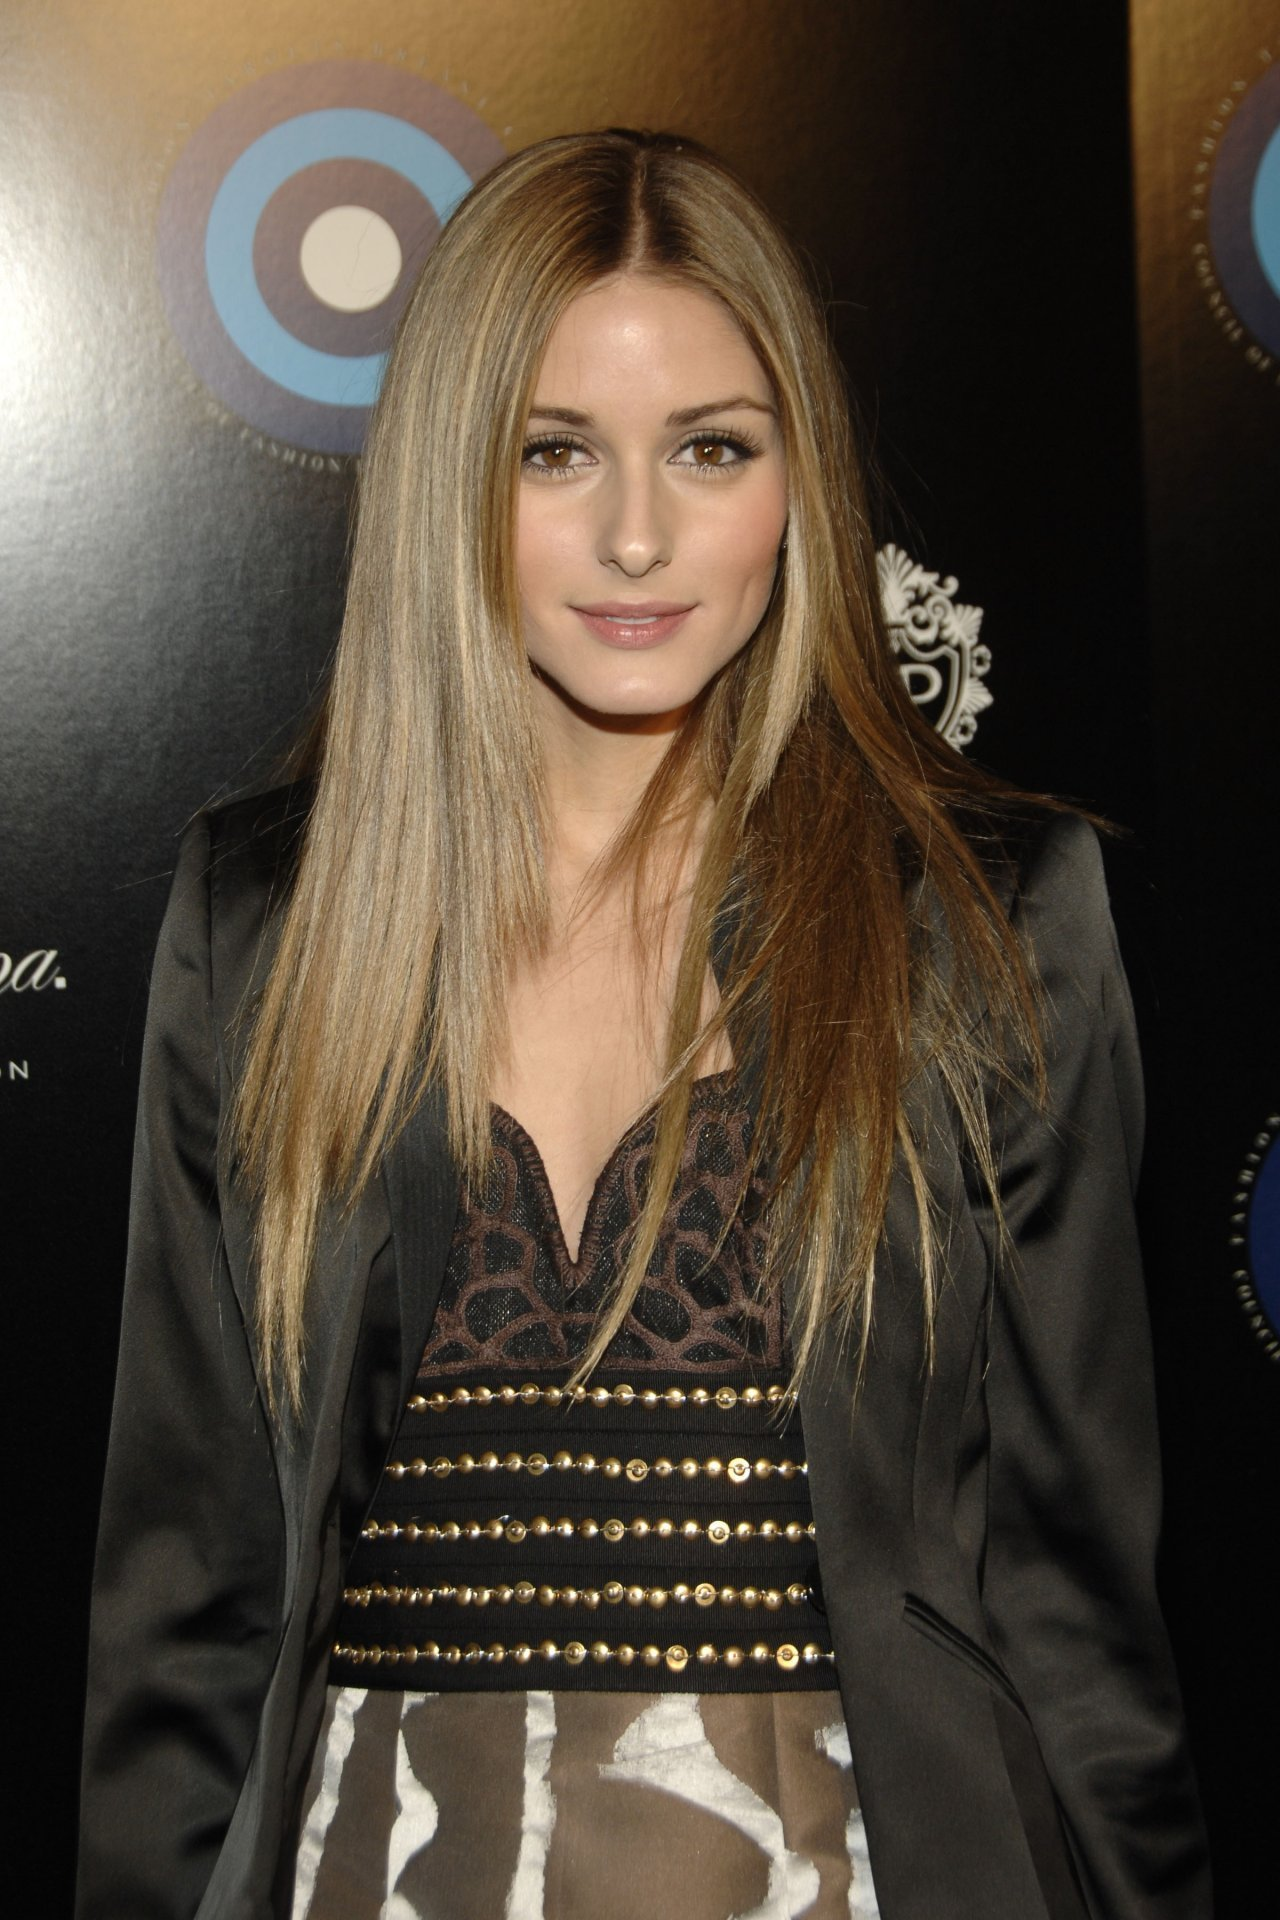 25 all time best pictures of olivia palermo style and fashion - 25 All Time Best Pictures Of Olivia Palermo Style And Fashion